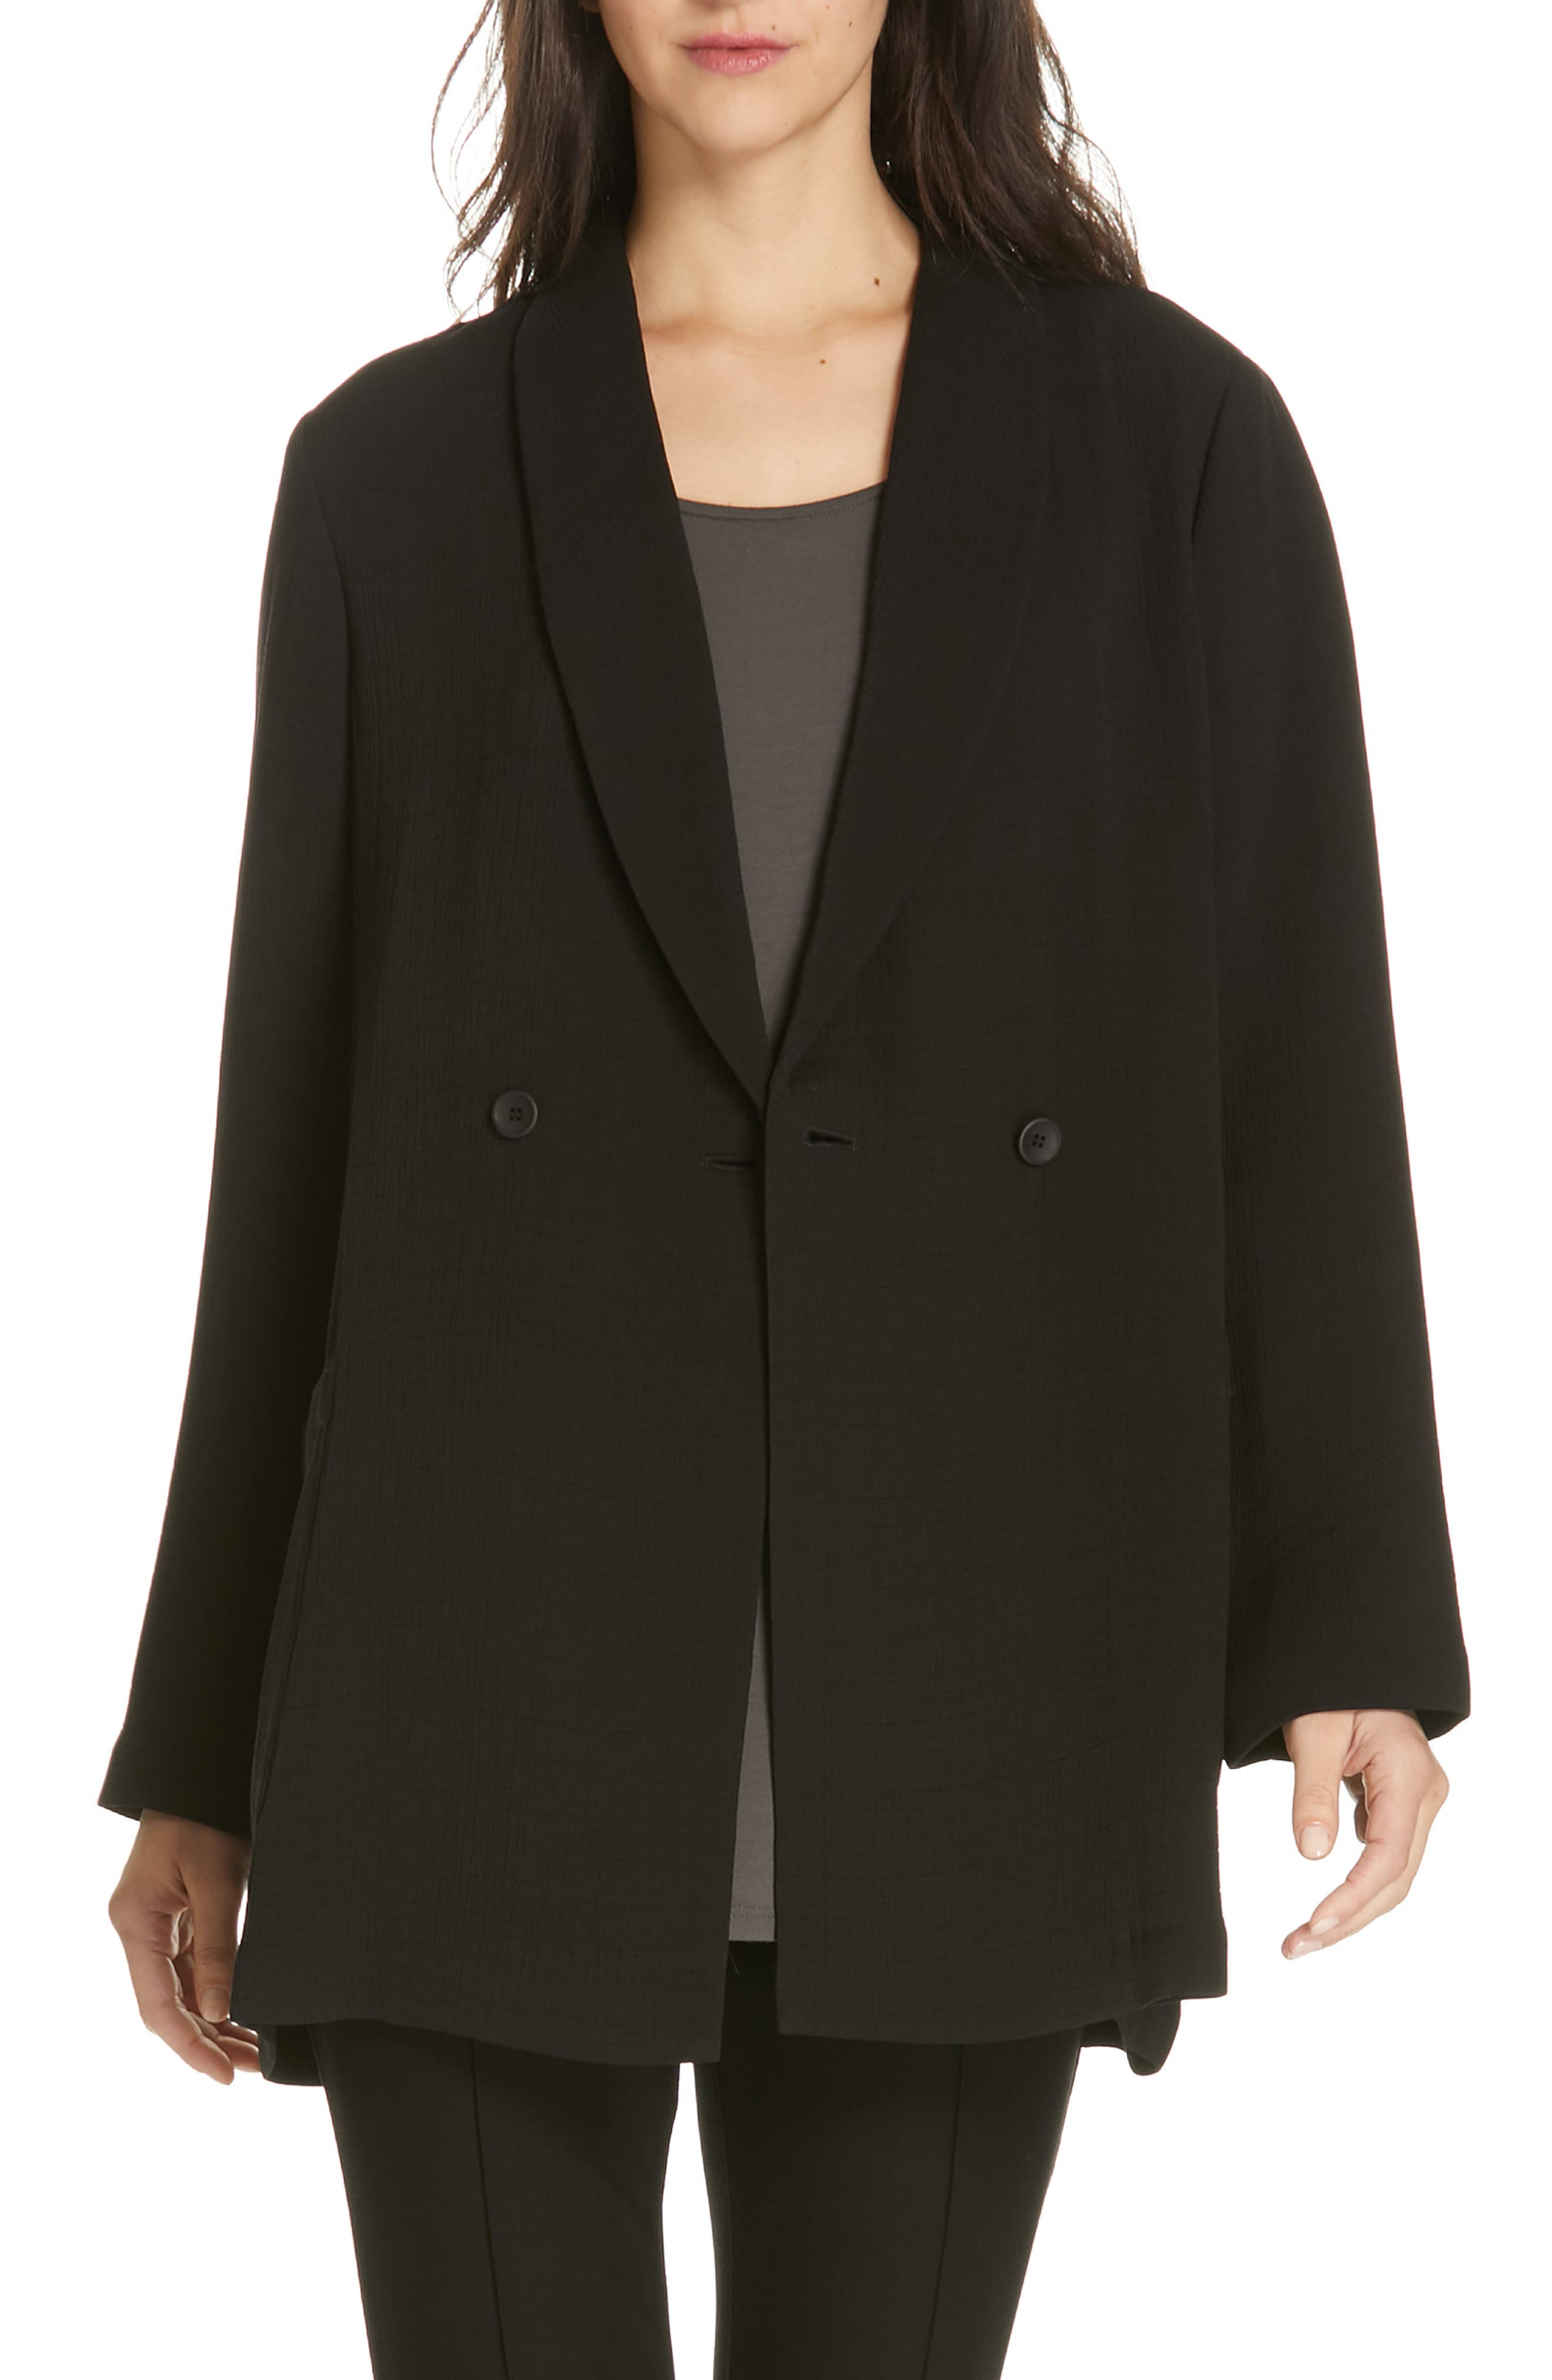 EILEEN FISHER, Double Breasted Blazer, Main thumbnail 1, color, BLACK